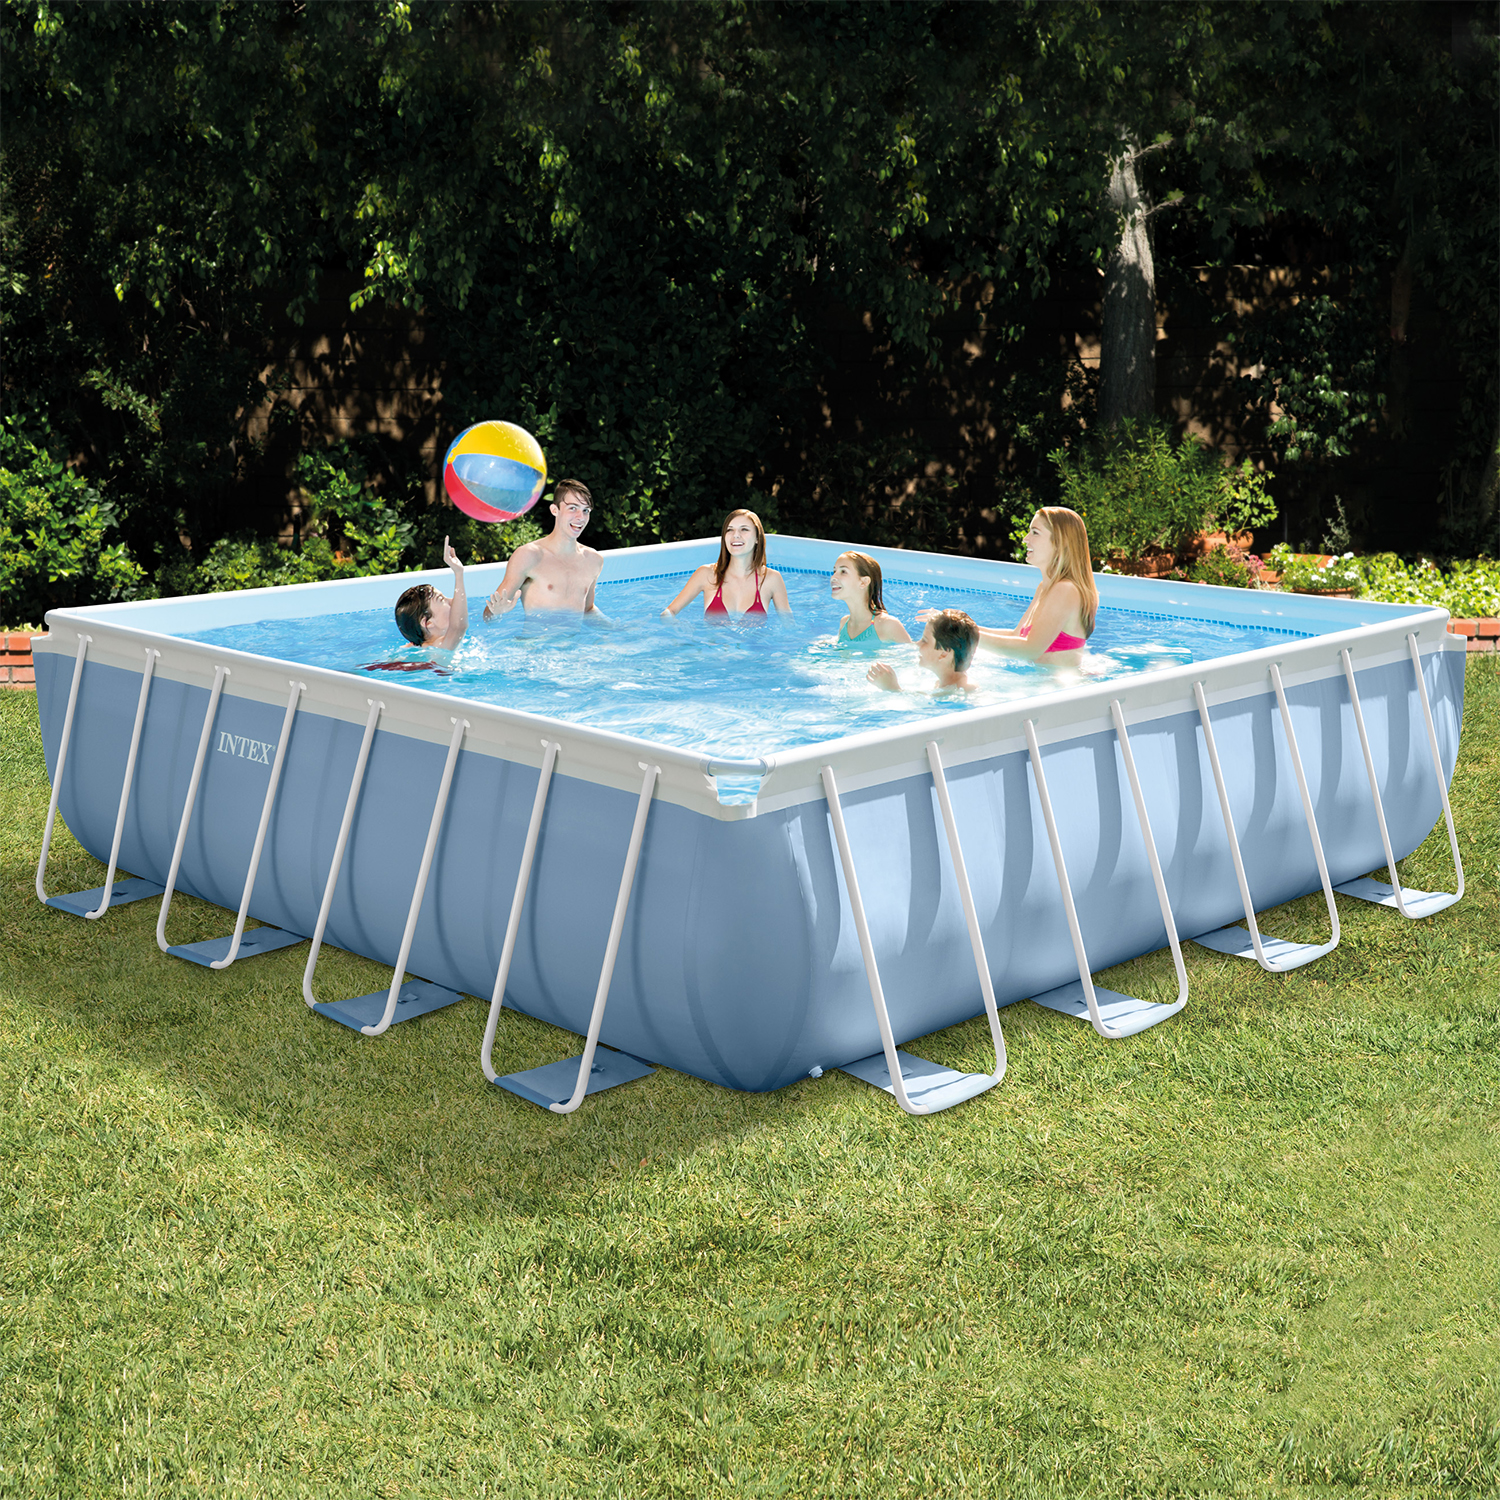 """Intex 16' x 16' x 48"""" Square Prism Frame Above Ground Pool with Filter Pump"""